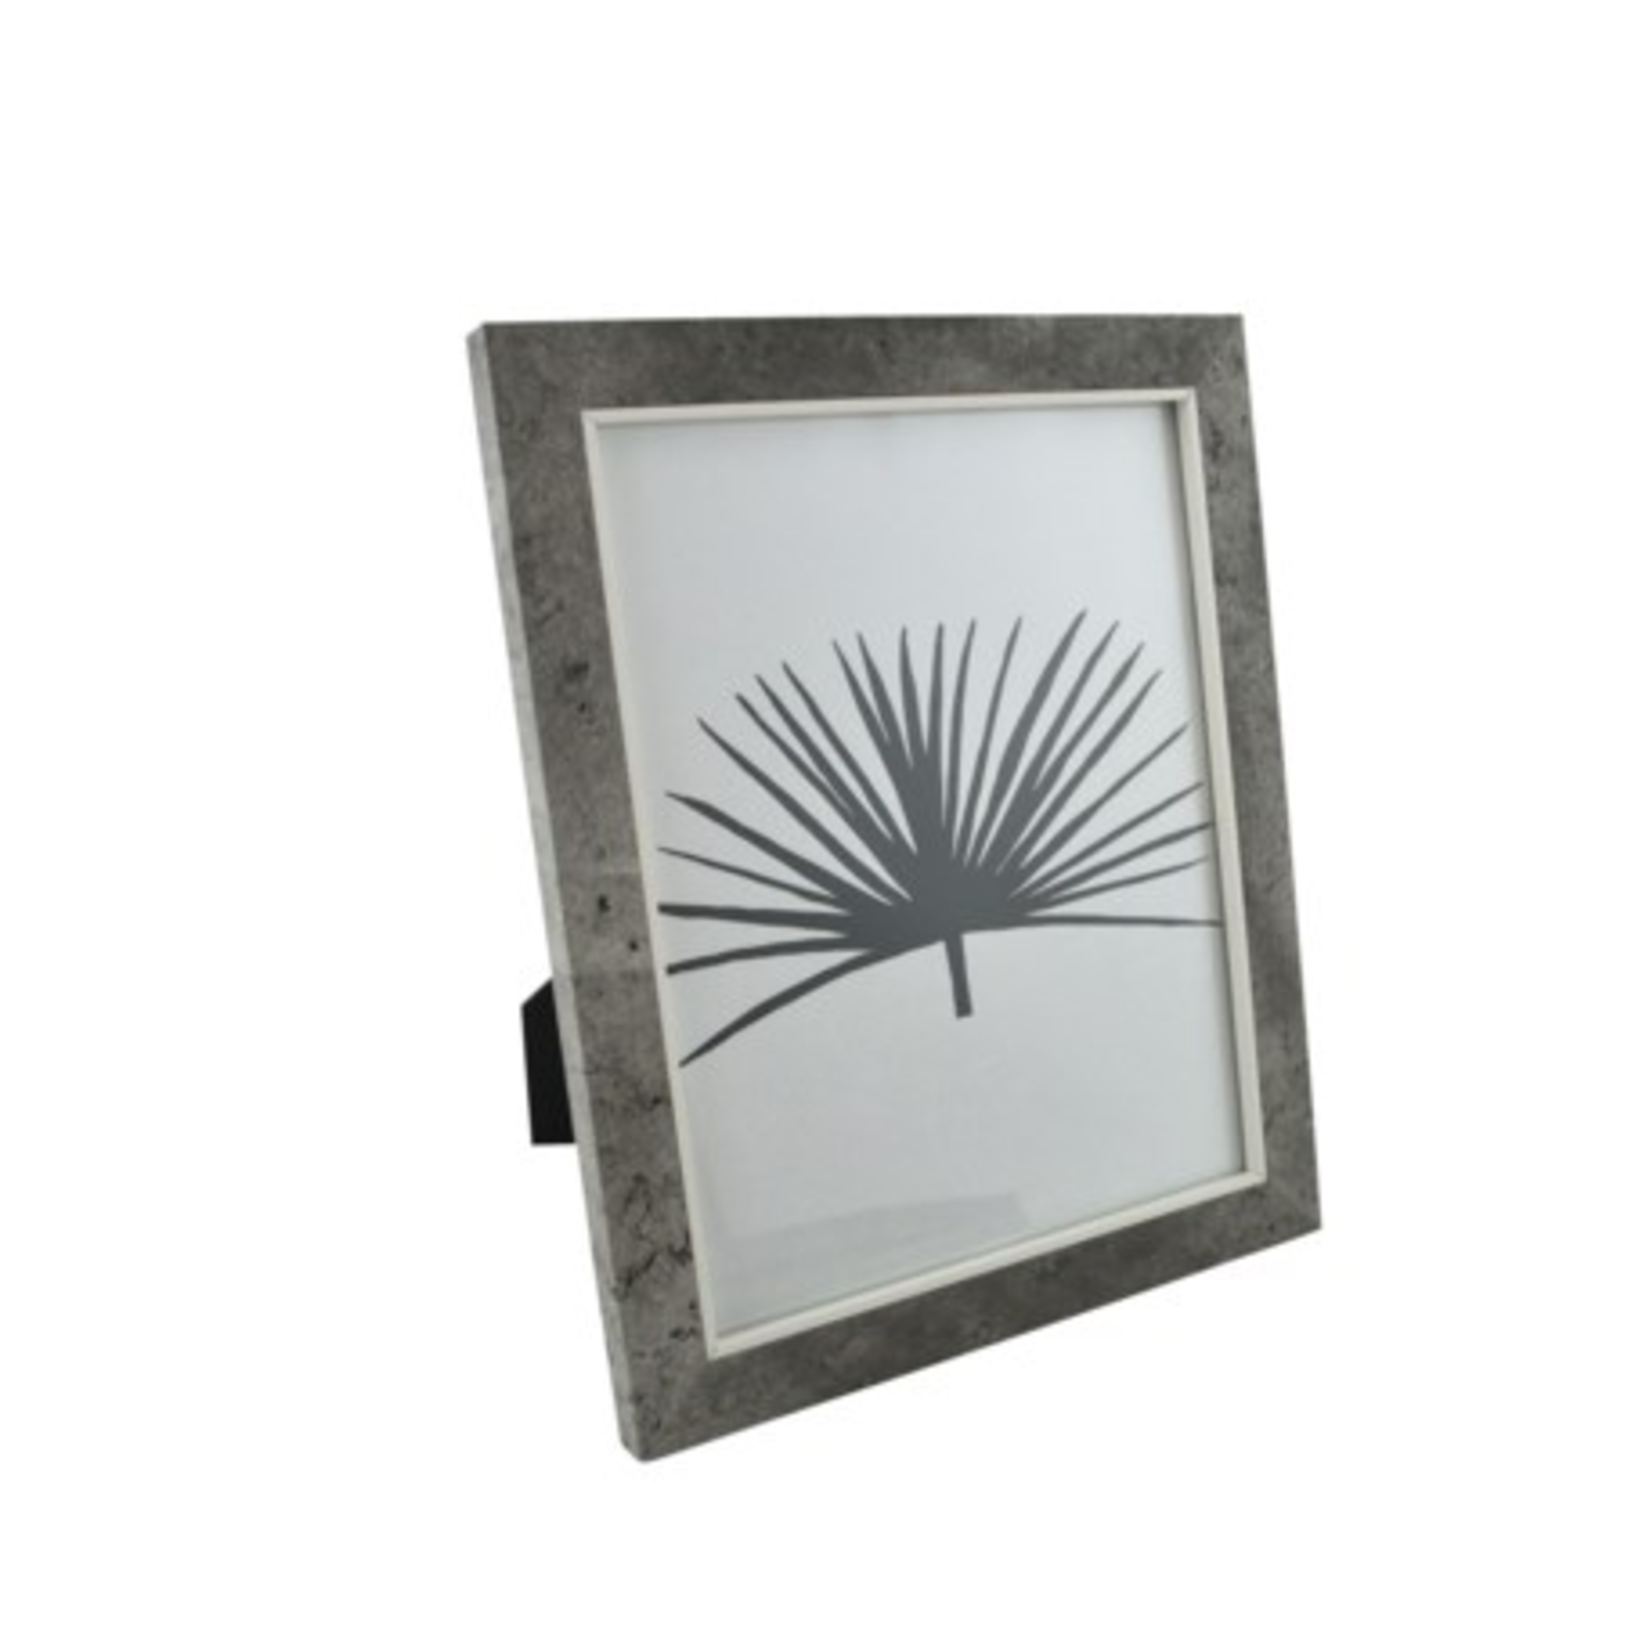 Grey Concrete Look Frame 4x6